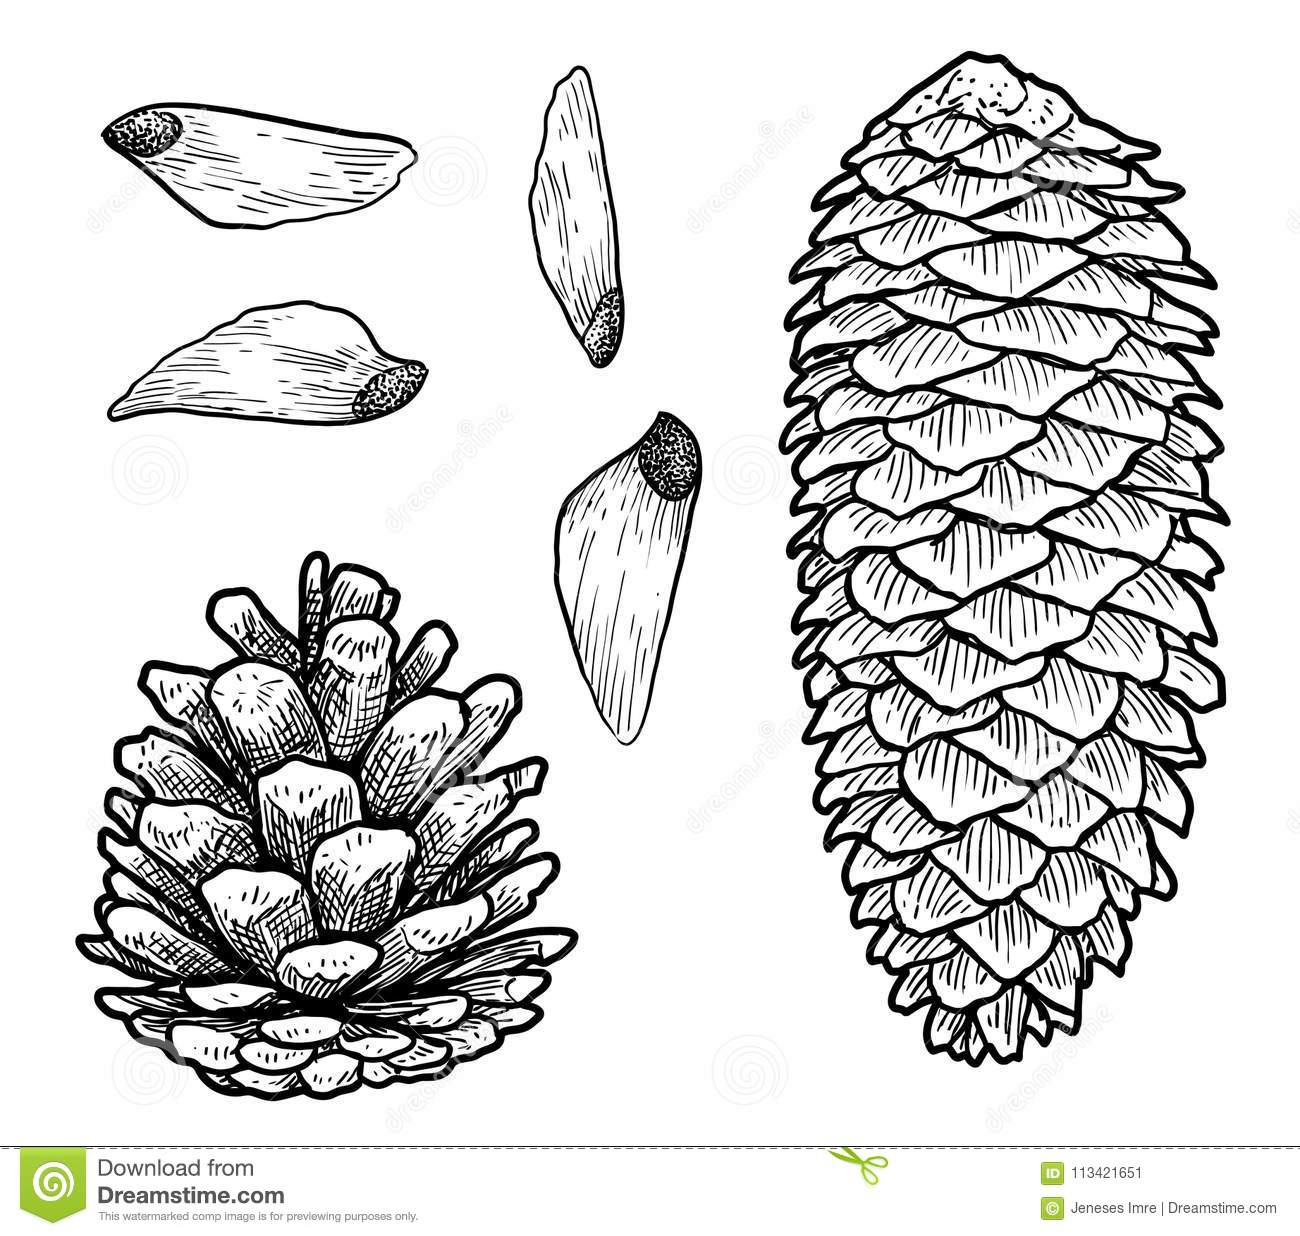 Pine Cone Illustration, Drawing, Engraving, Ink, Line Art